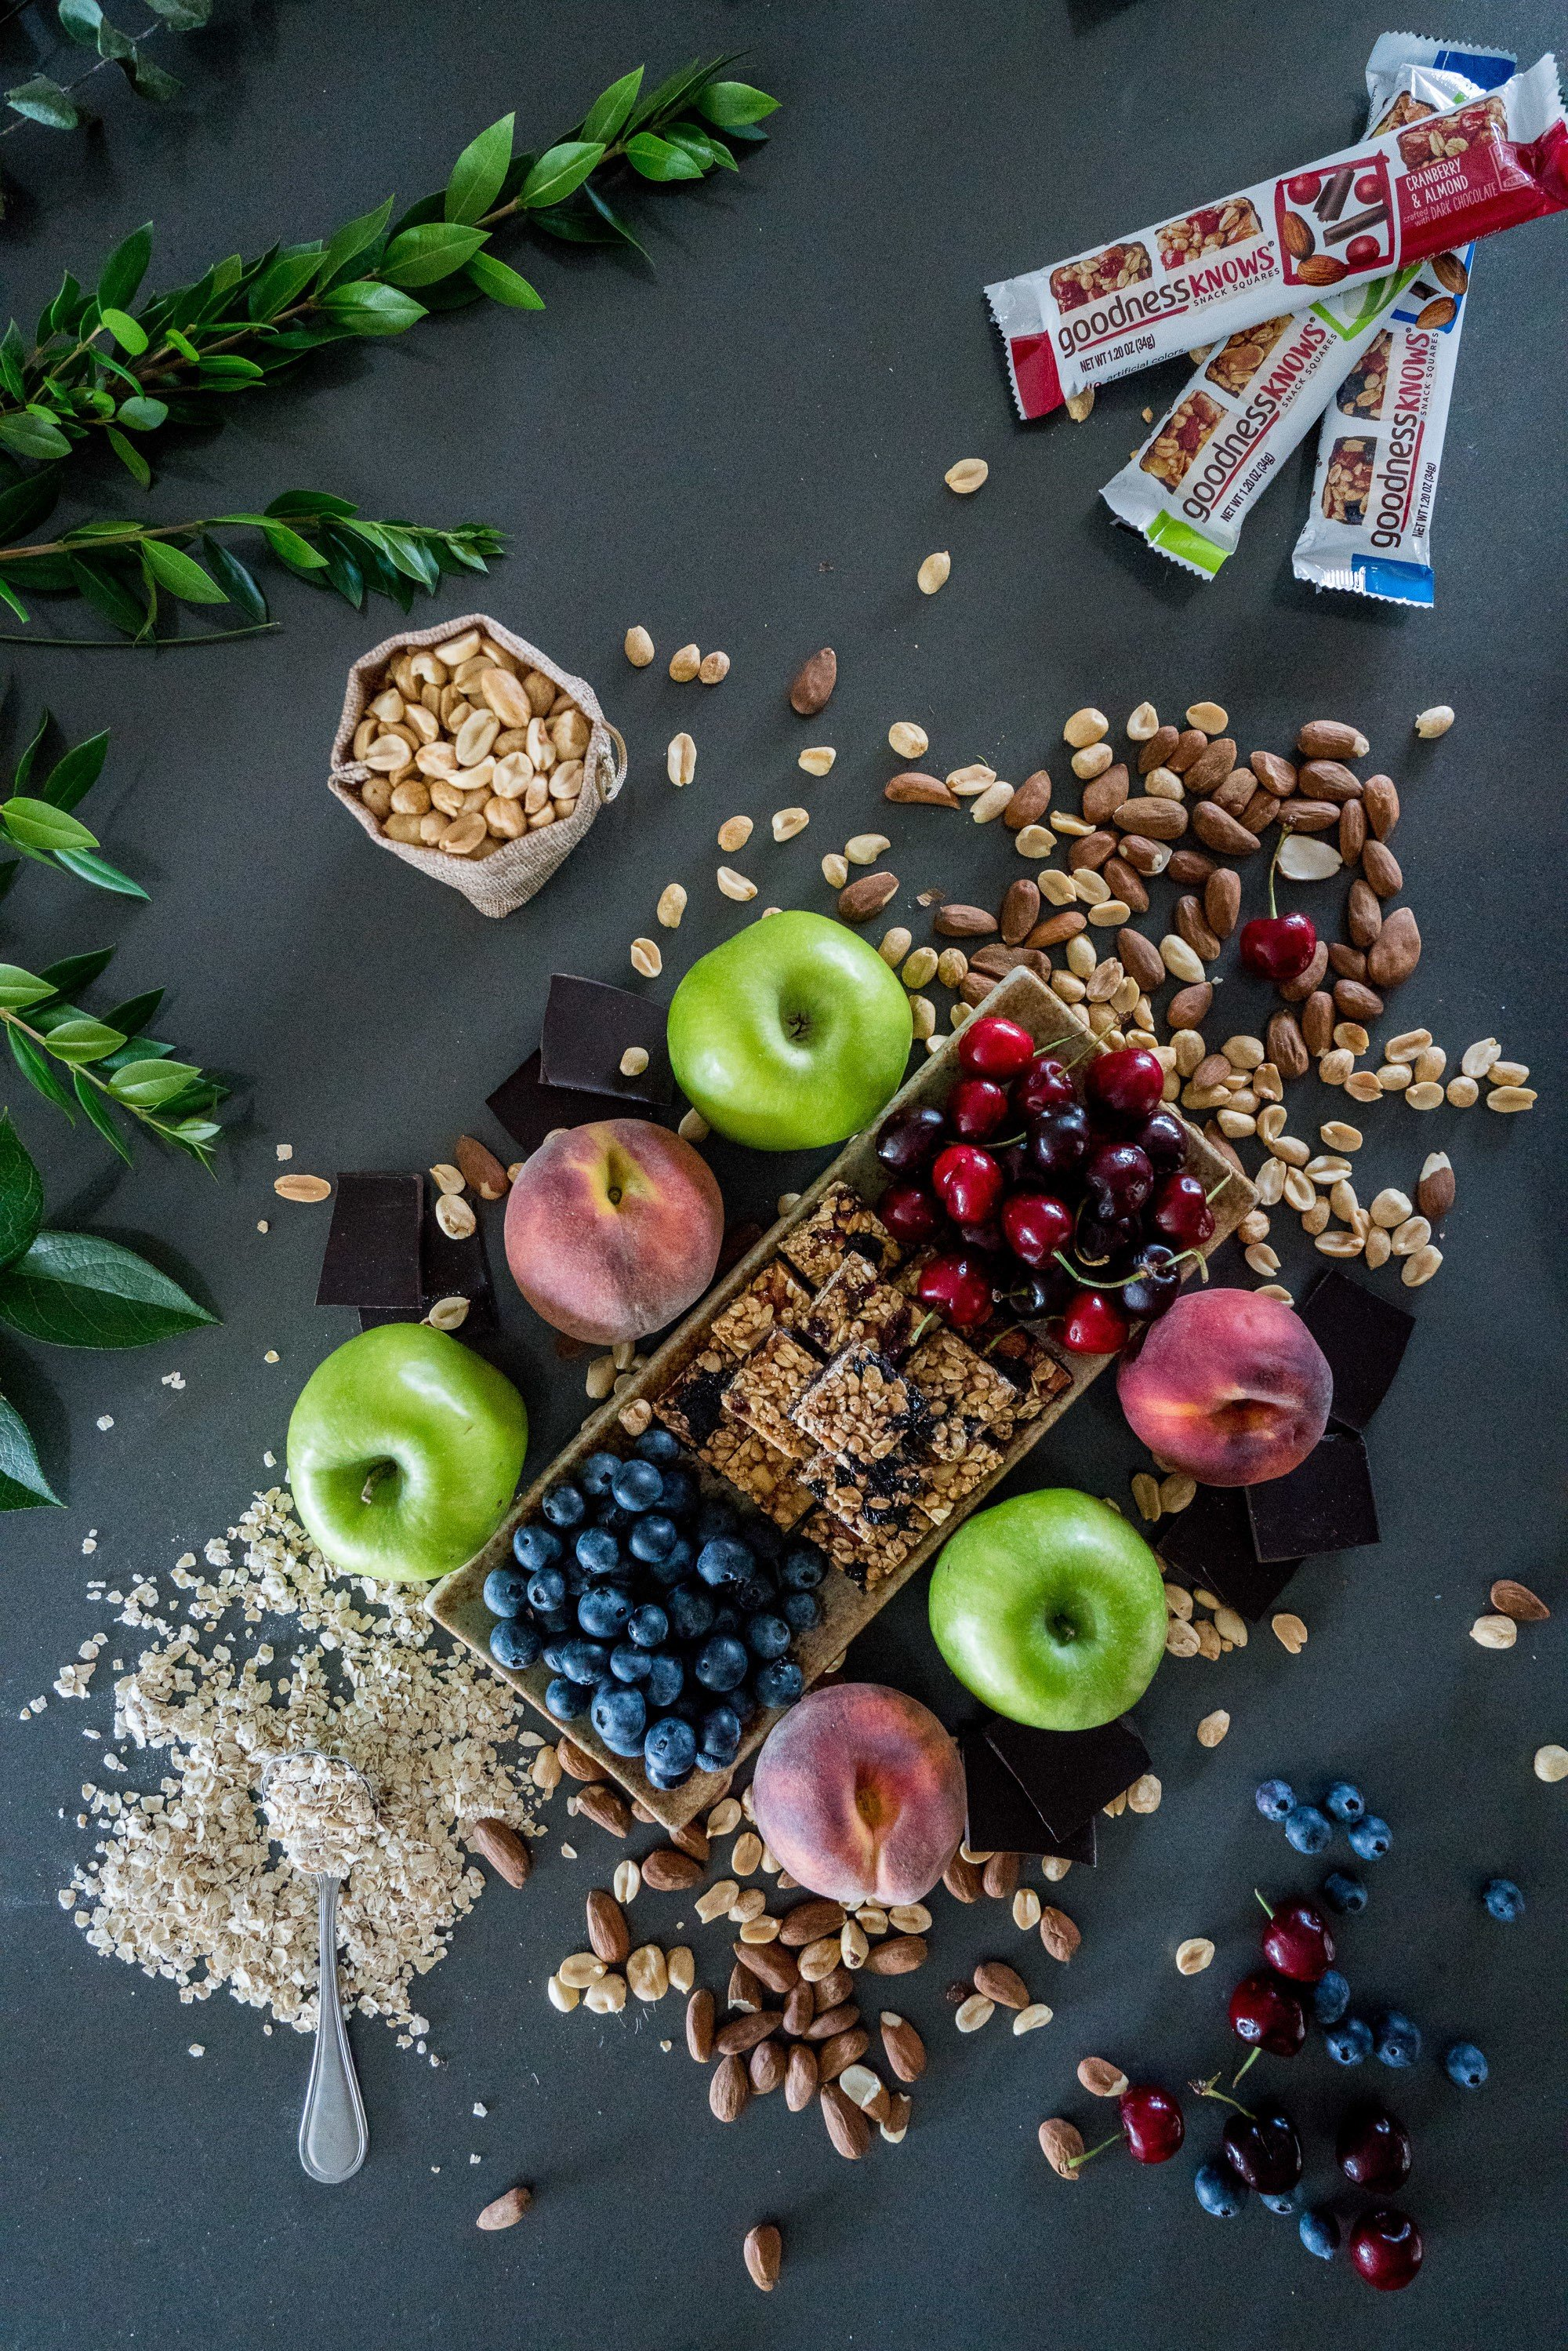 Fruit, nuts, oats and chocolate... what's inside a goodnessknows snack square.